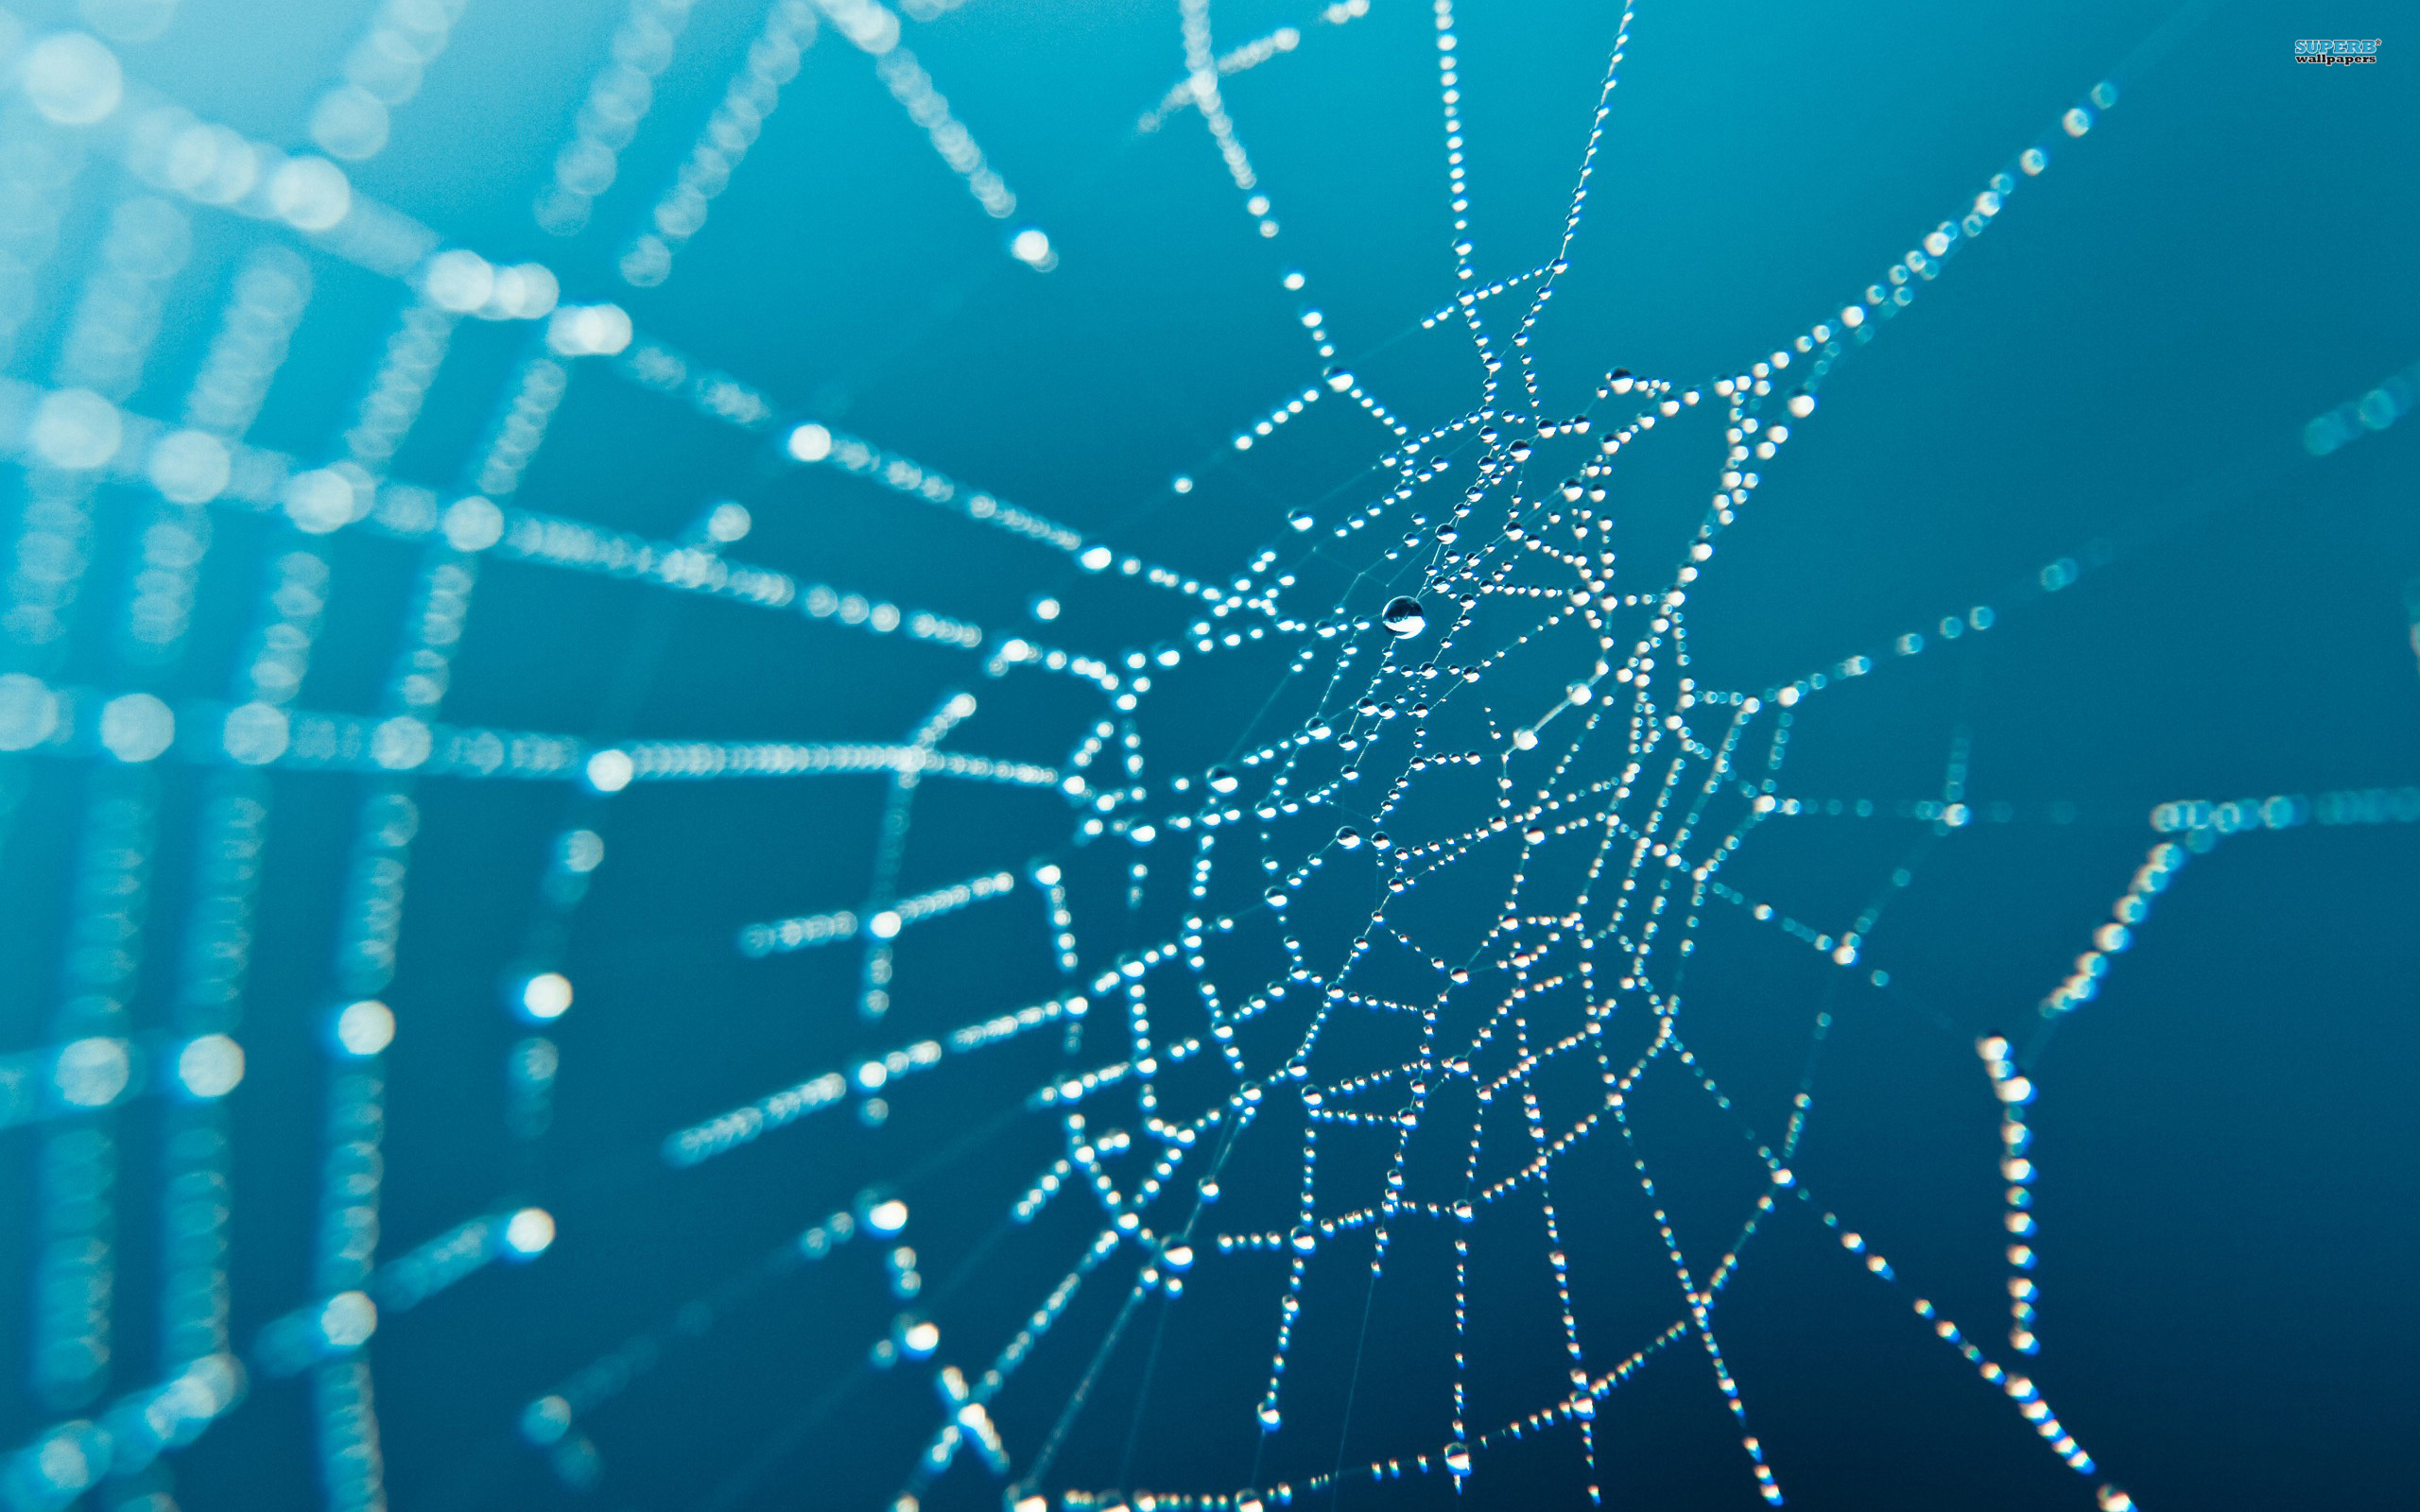 ... Spider Web wallpaper - 1061856 ...